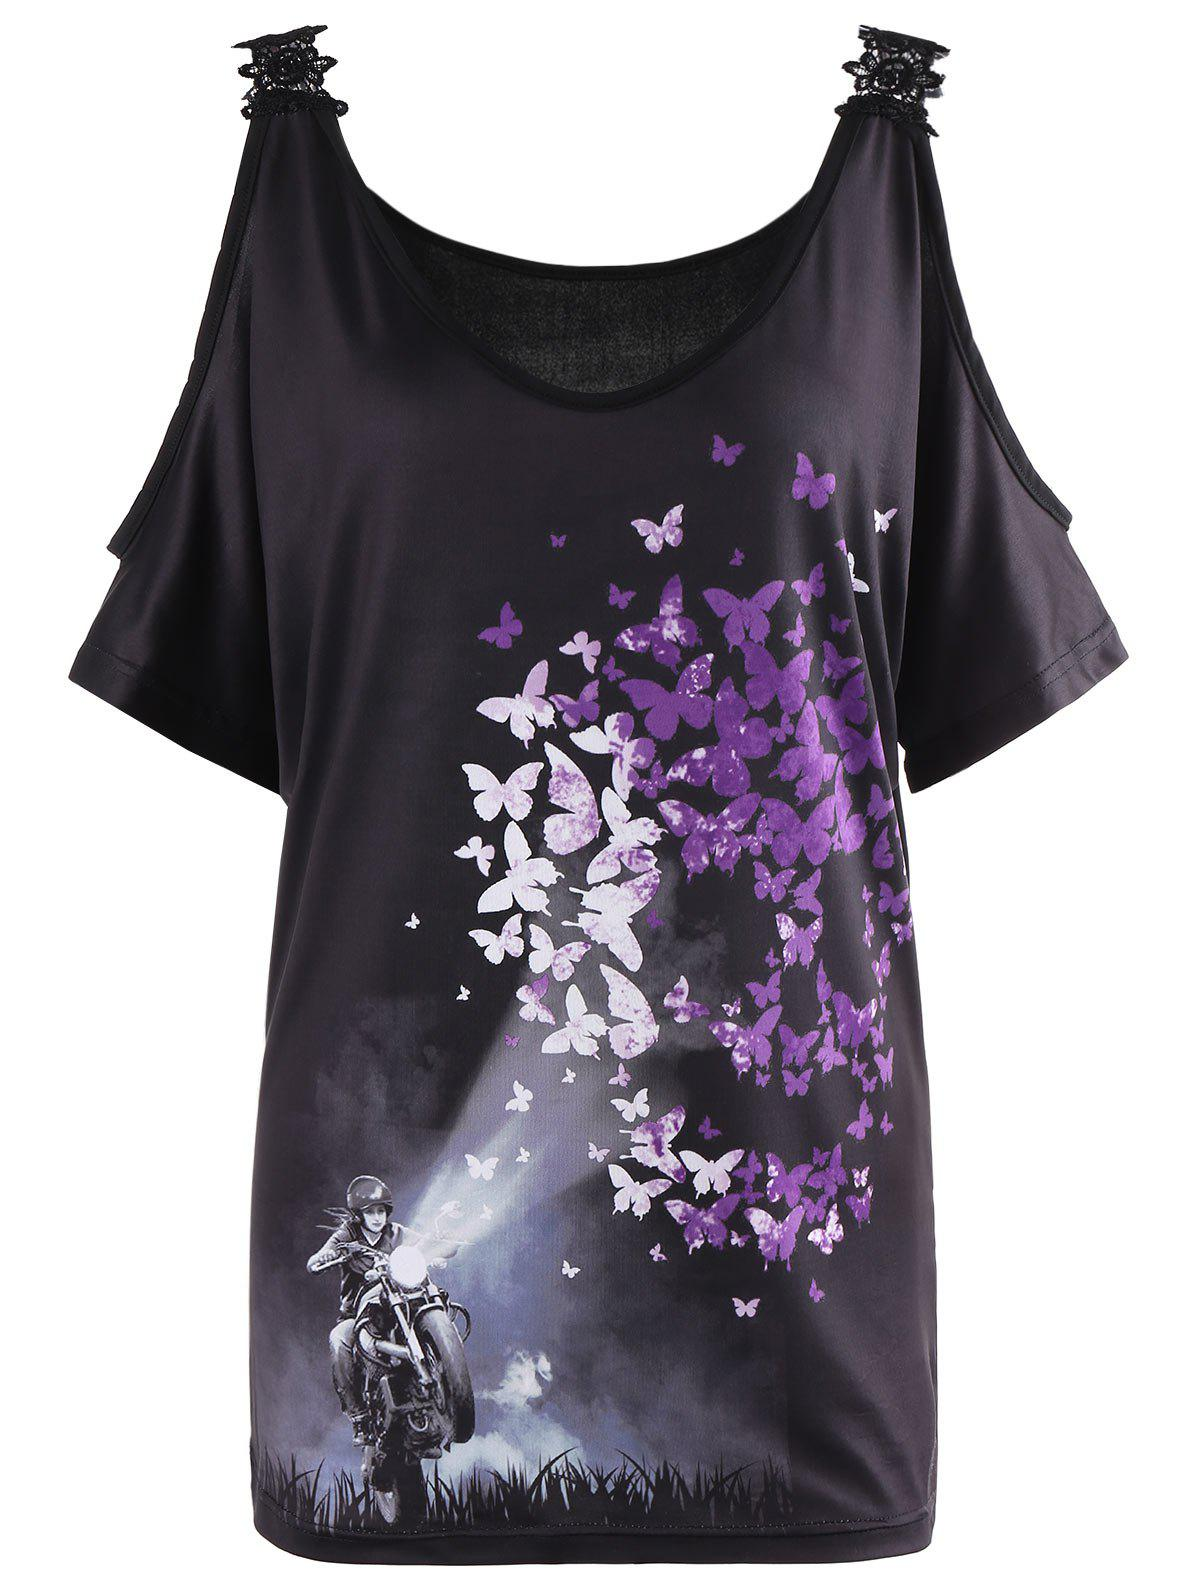 Butterfly Print Lace Insert Cold Shoulder BlouseWOMEN<br><br>Size: XL; Color: BLACK; Occasion: Casual; Style: Casual; Material: Polyester,Spandex; Shirt Length: Regular; Sleeve Length: Short; Collar: U Neck; Pattern Type: Butterfly,Print; Embellishment: Lace; Season: Summer; Elasticity: Elastic; Weight: 0.2200kg; Package Contents: 1 x Blouse;